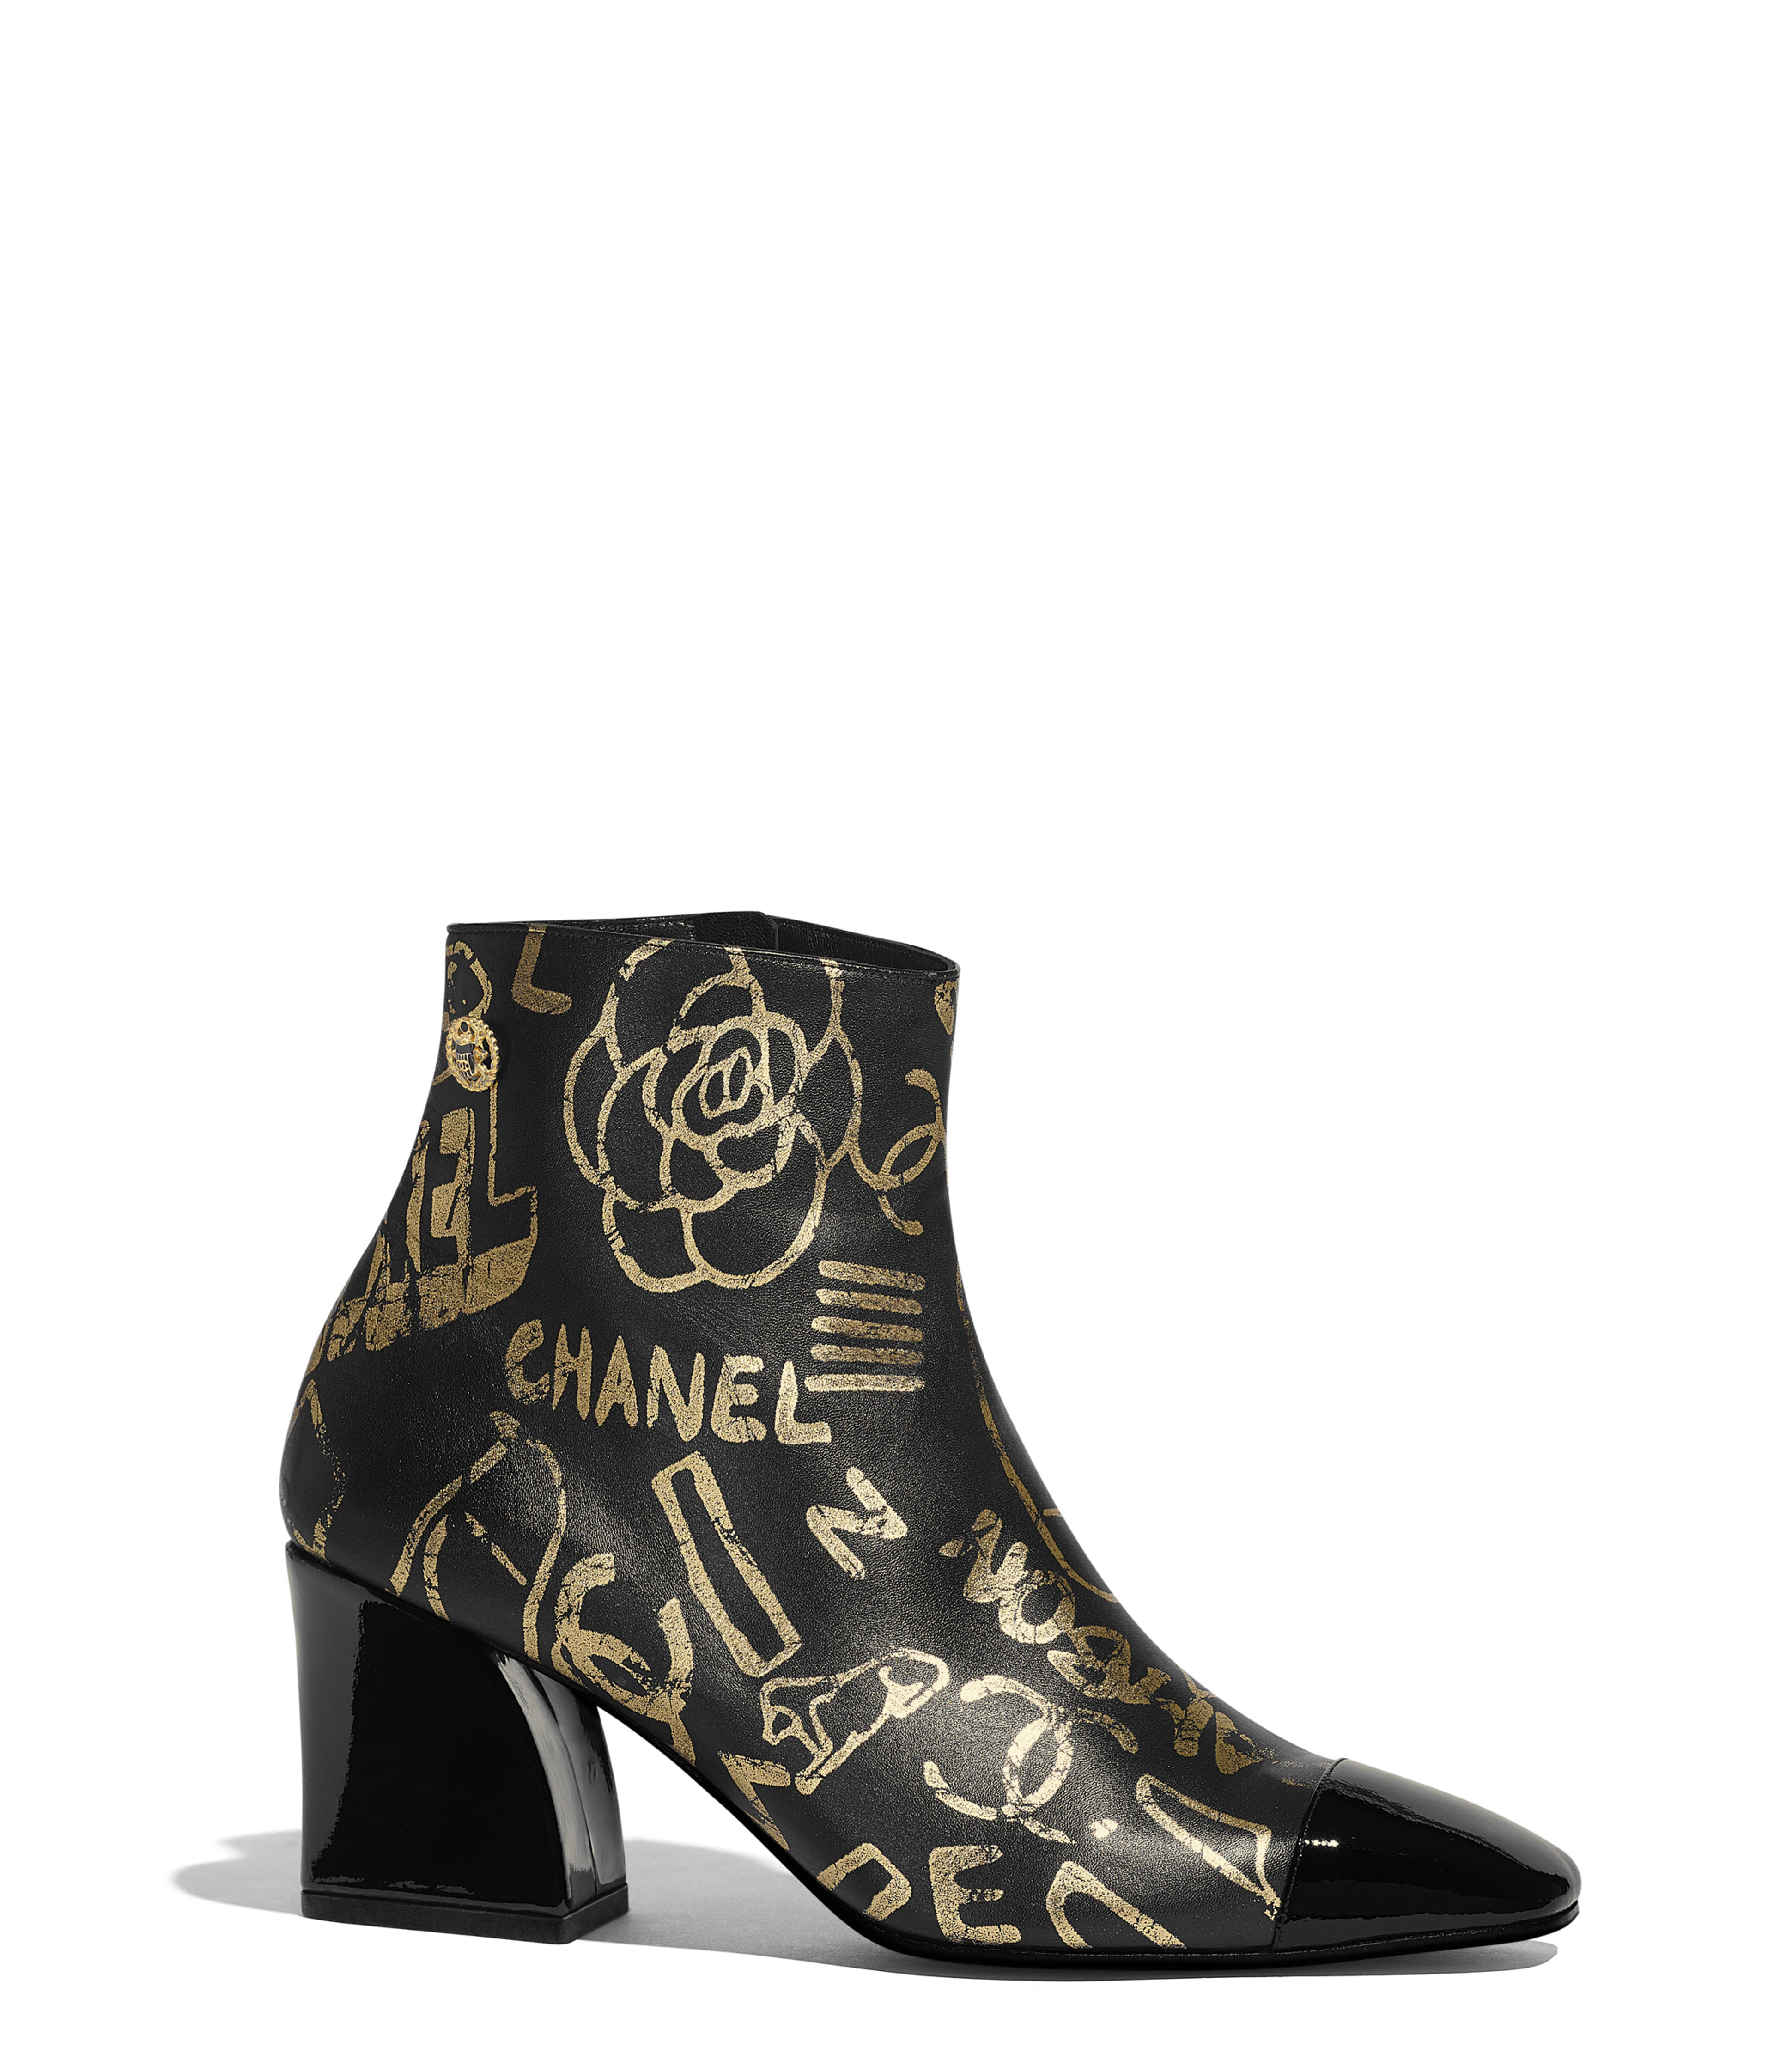 4993226a7 Ankle Boots Printed Lambskin & Patent Calfskin, Gold & Black Ref.  G35073Y53384C0369